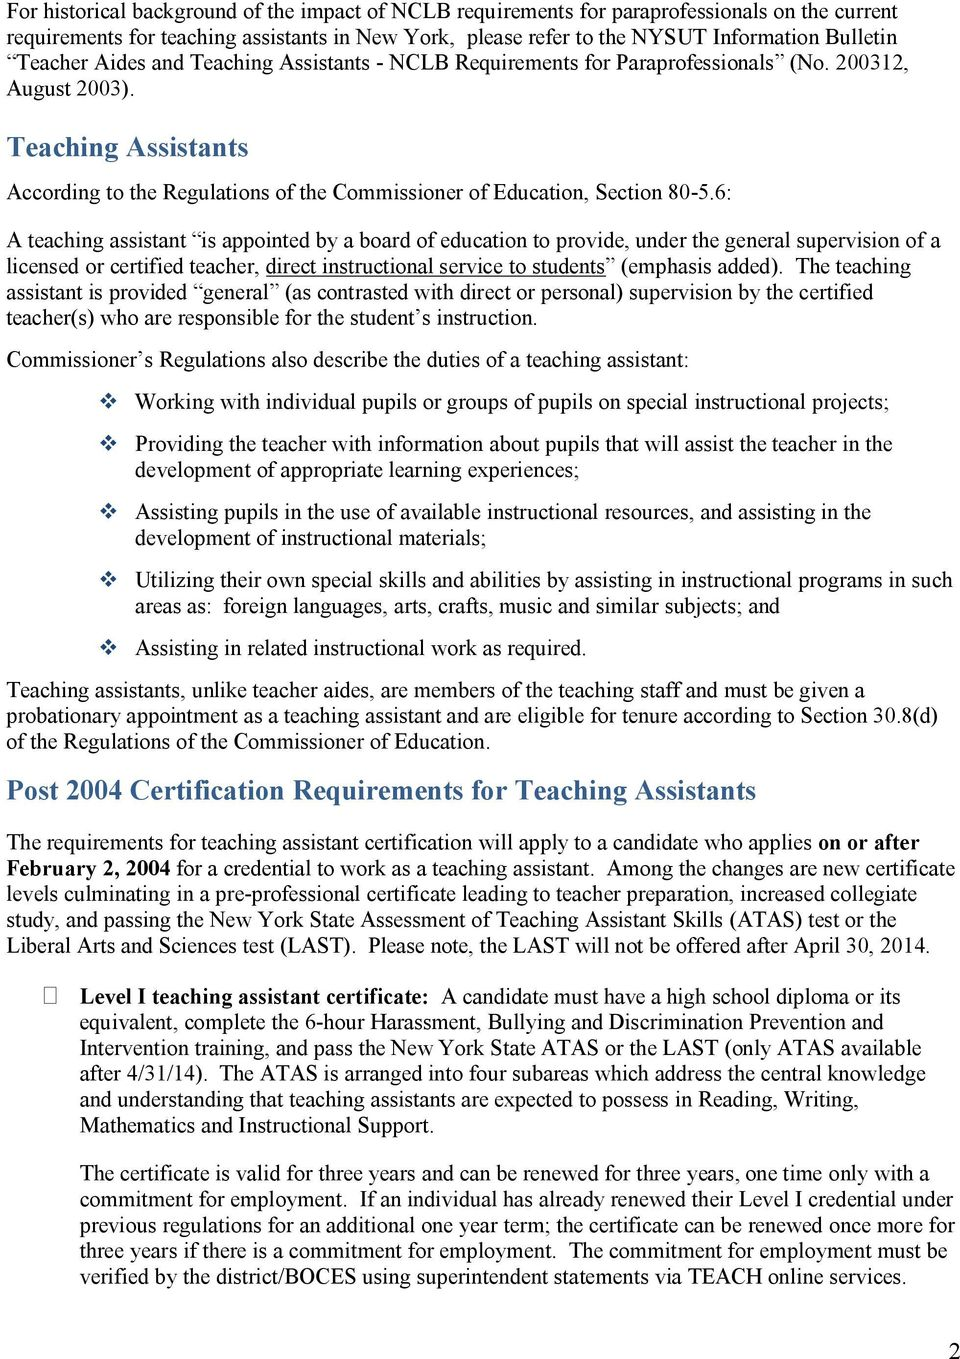 Certification Requirements For Teaching Assistants Pdf